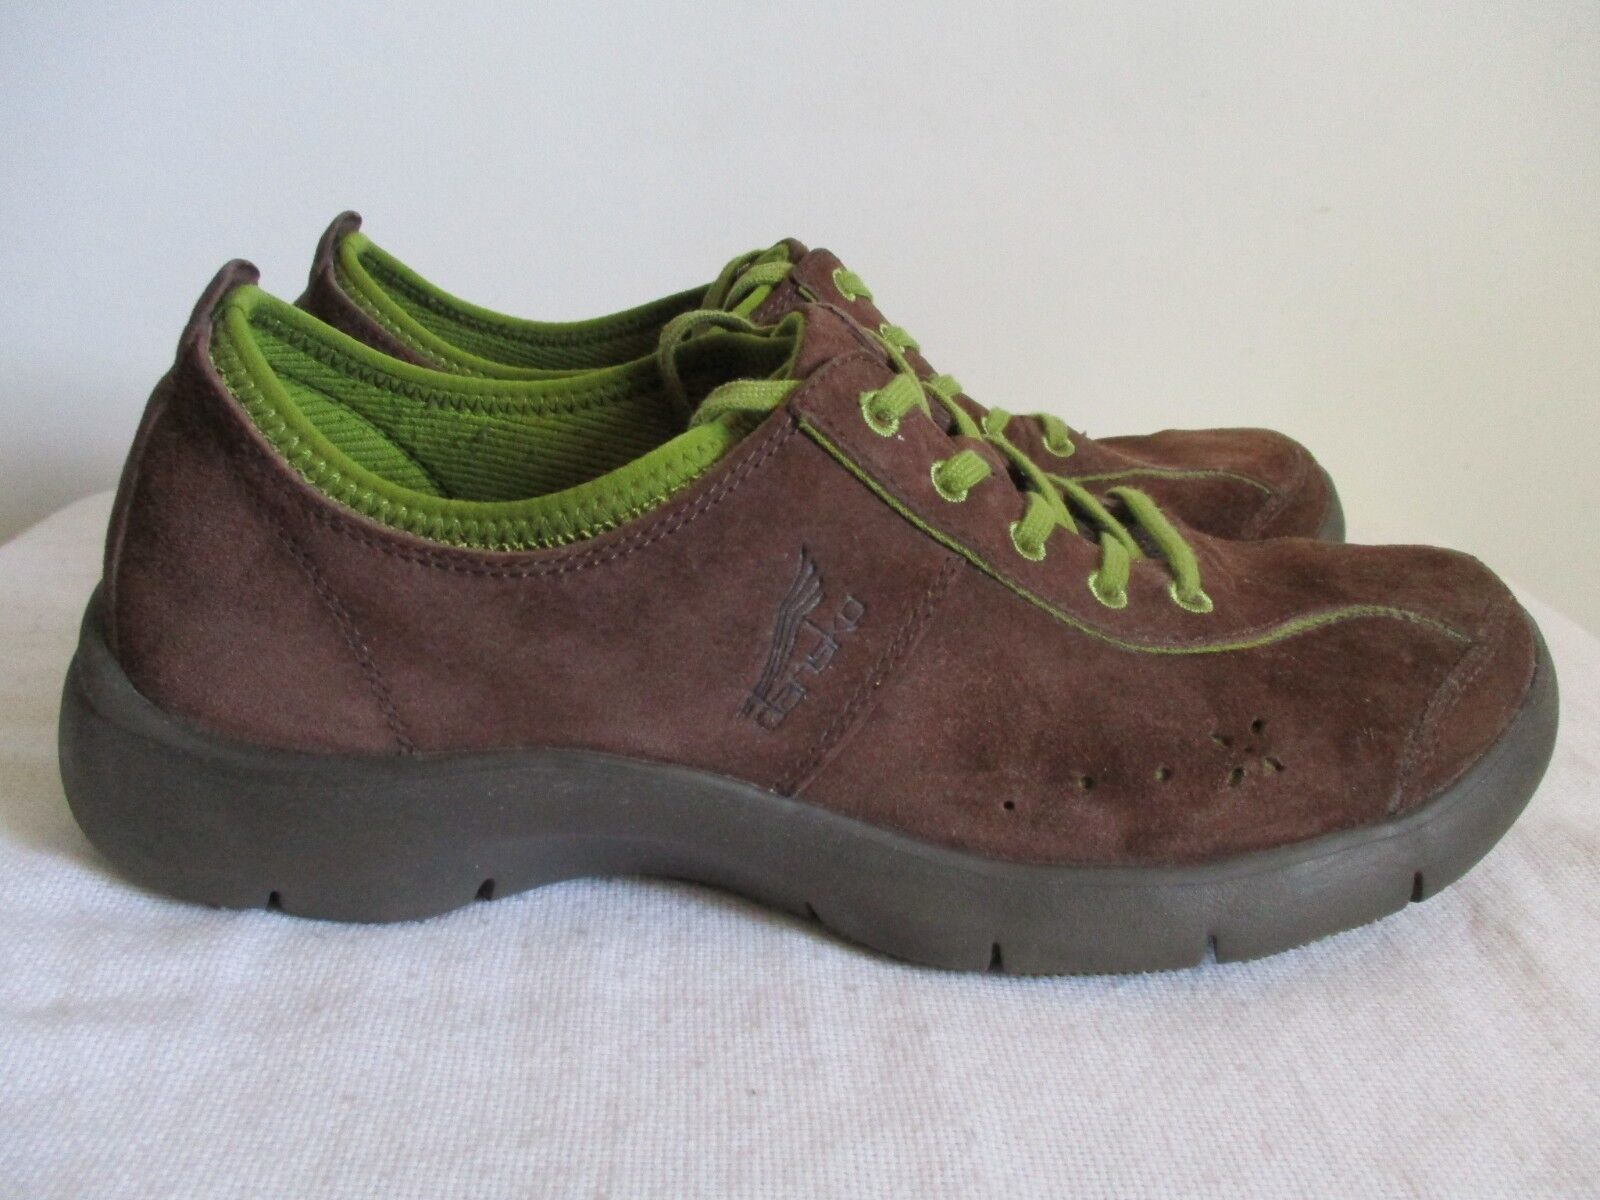 Dansko Elise Brown Green Suede Sneakers Lace Up Womens Size 41 EU 10 10.5 US